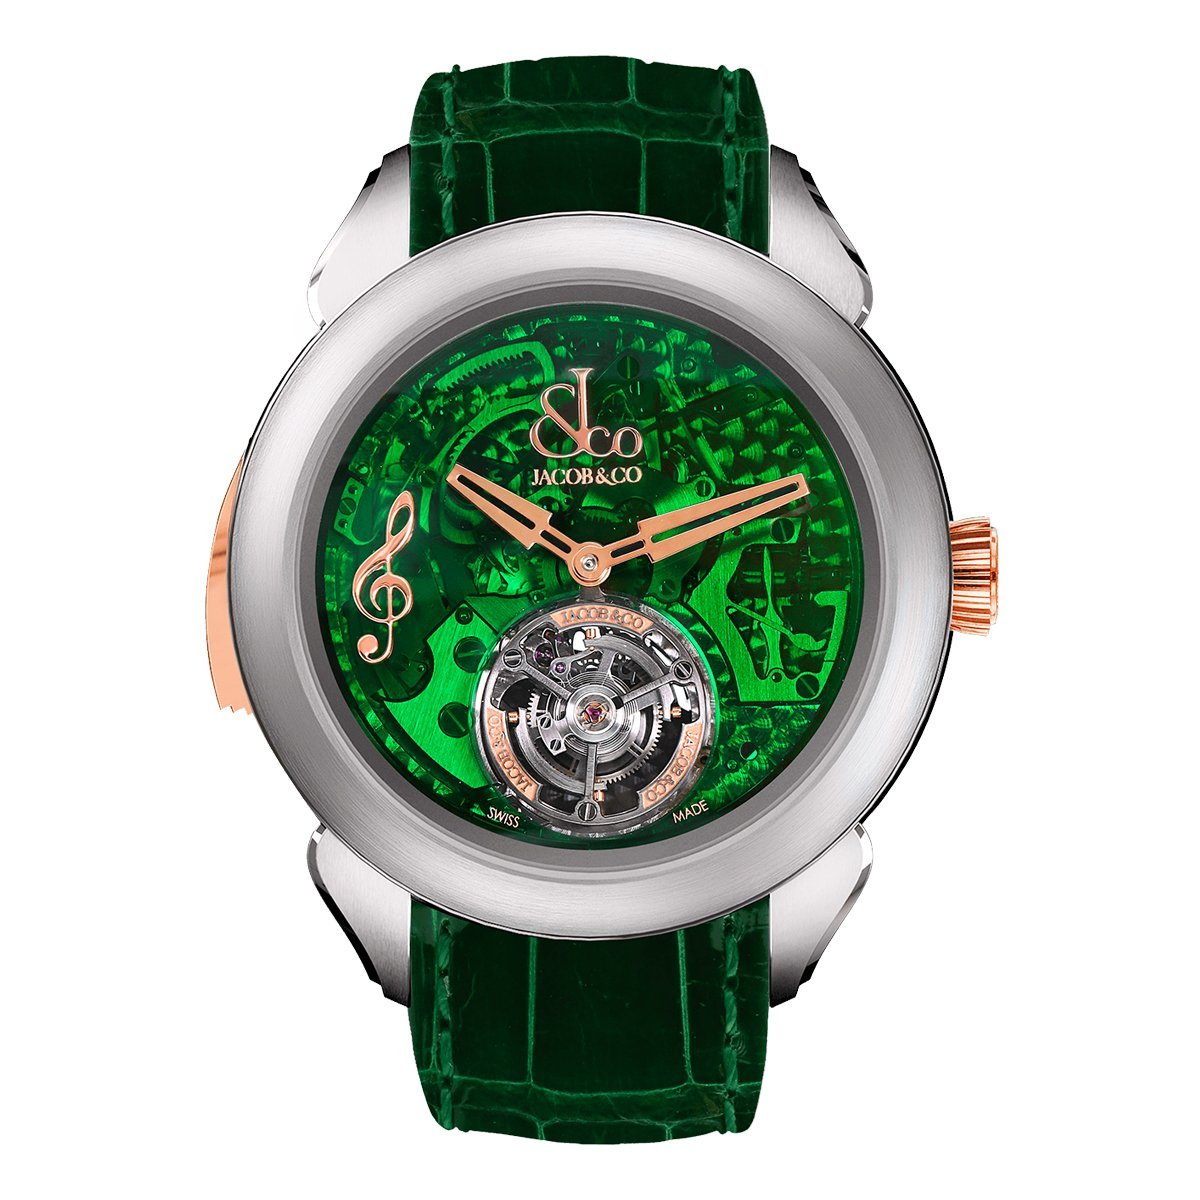 Jacob & Co. Palatial Flying Tourbillon Minute Repeater Titanium Green Mineral - Watches & Crystals